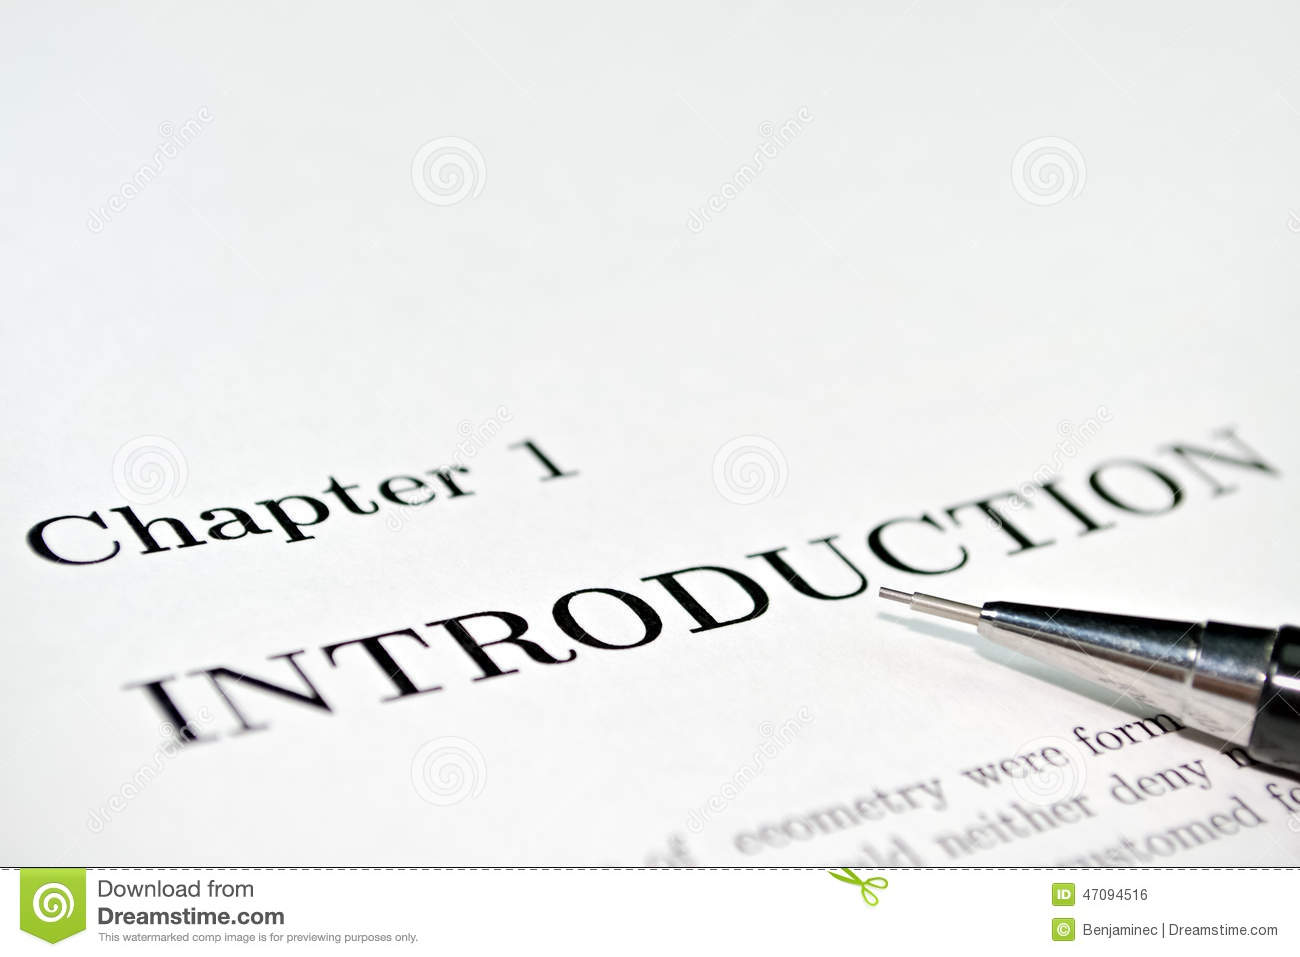 Introductory words at the beginning of a professional paper.: www.dreamstime.com/stock-photo-introduction-introductory-words...